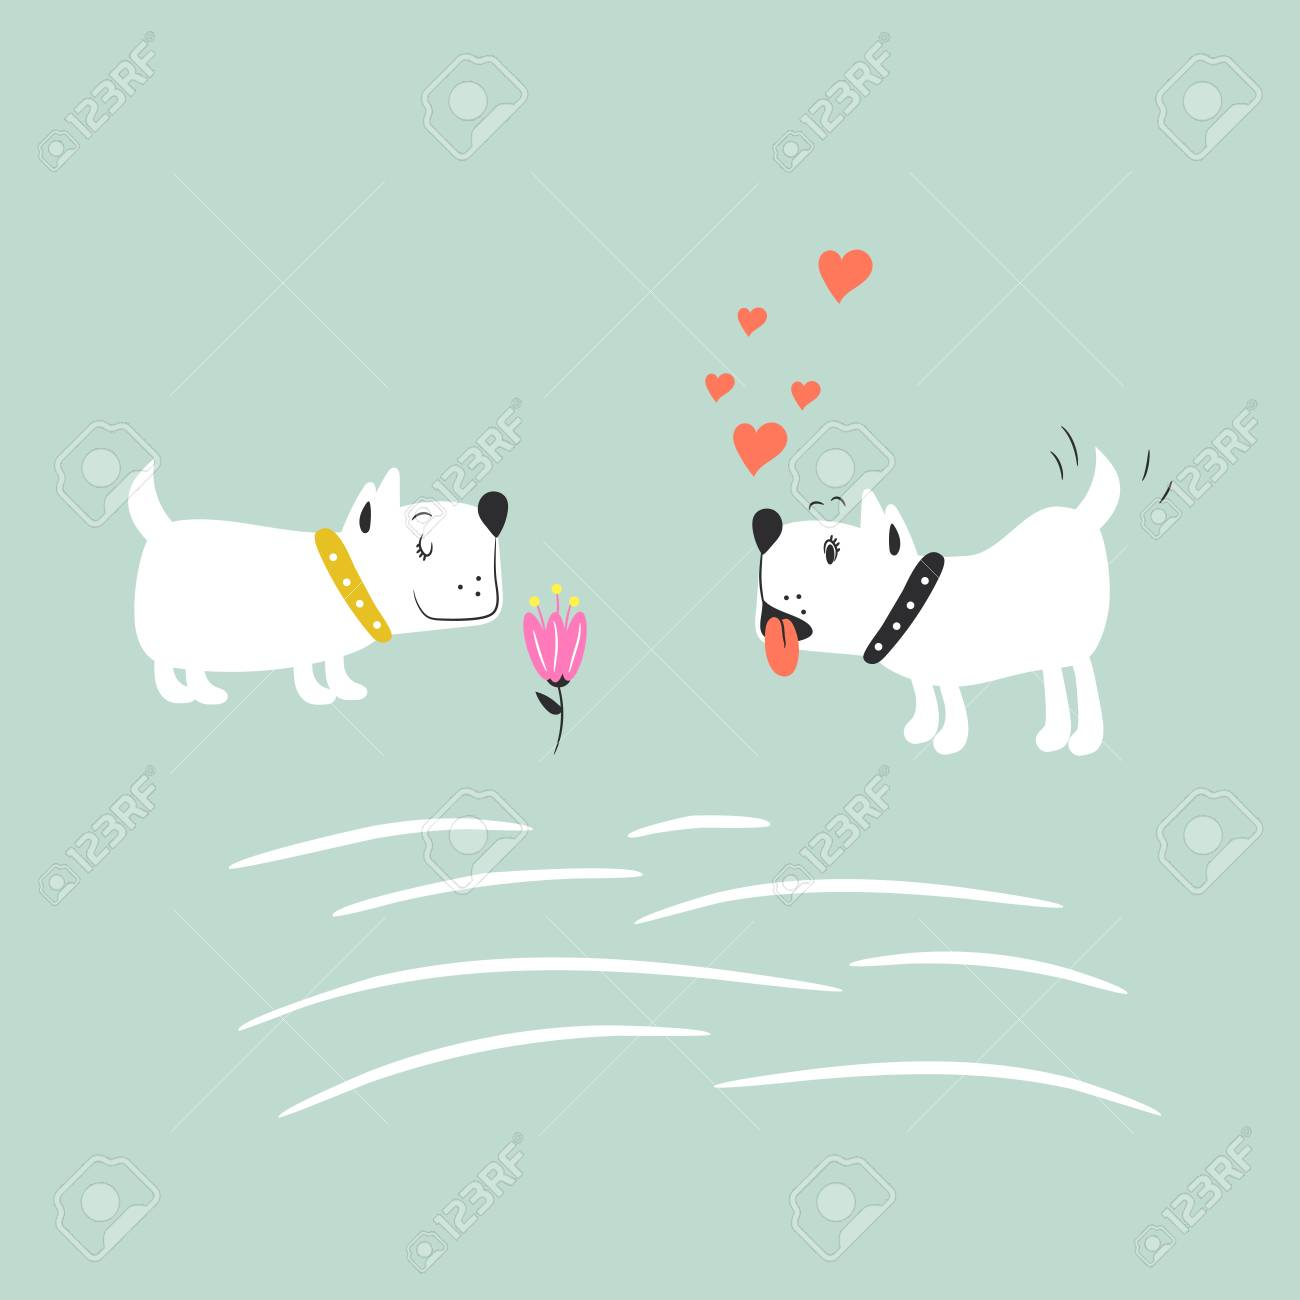 Adorable Puppies In Love Vector Illustration Cute Dogs Romantic Royalty Free Cliparts Vectors And Stock Illustration Image 111775959